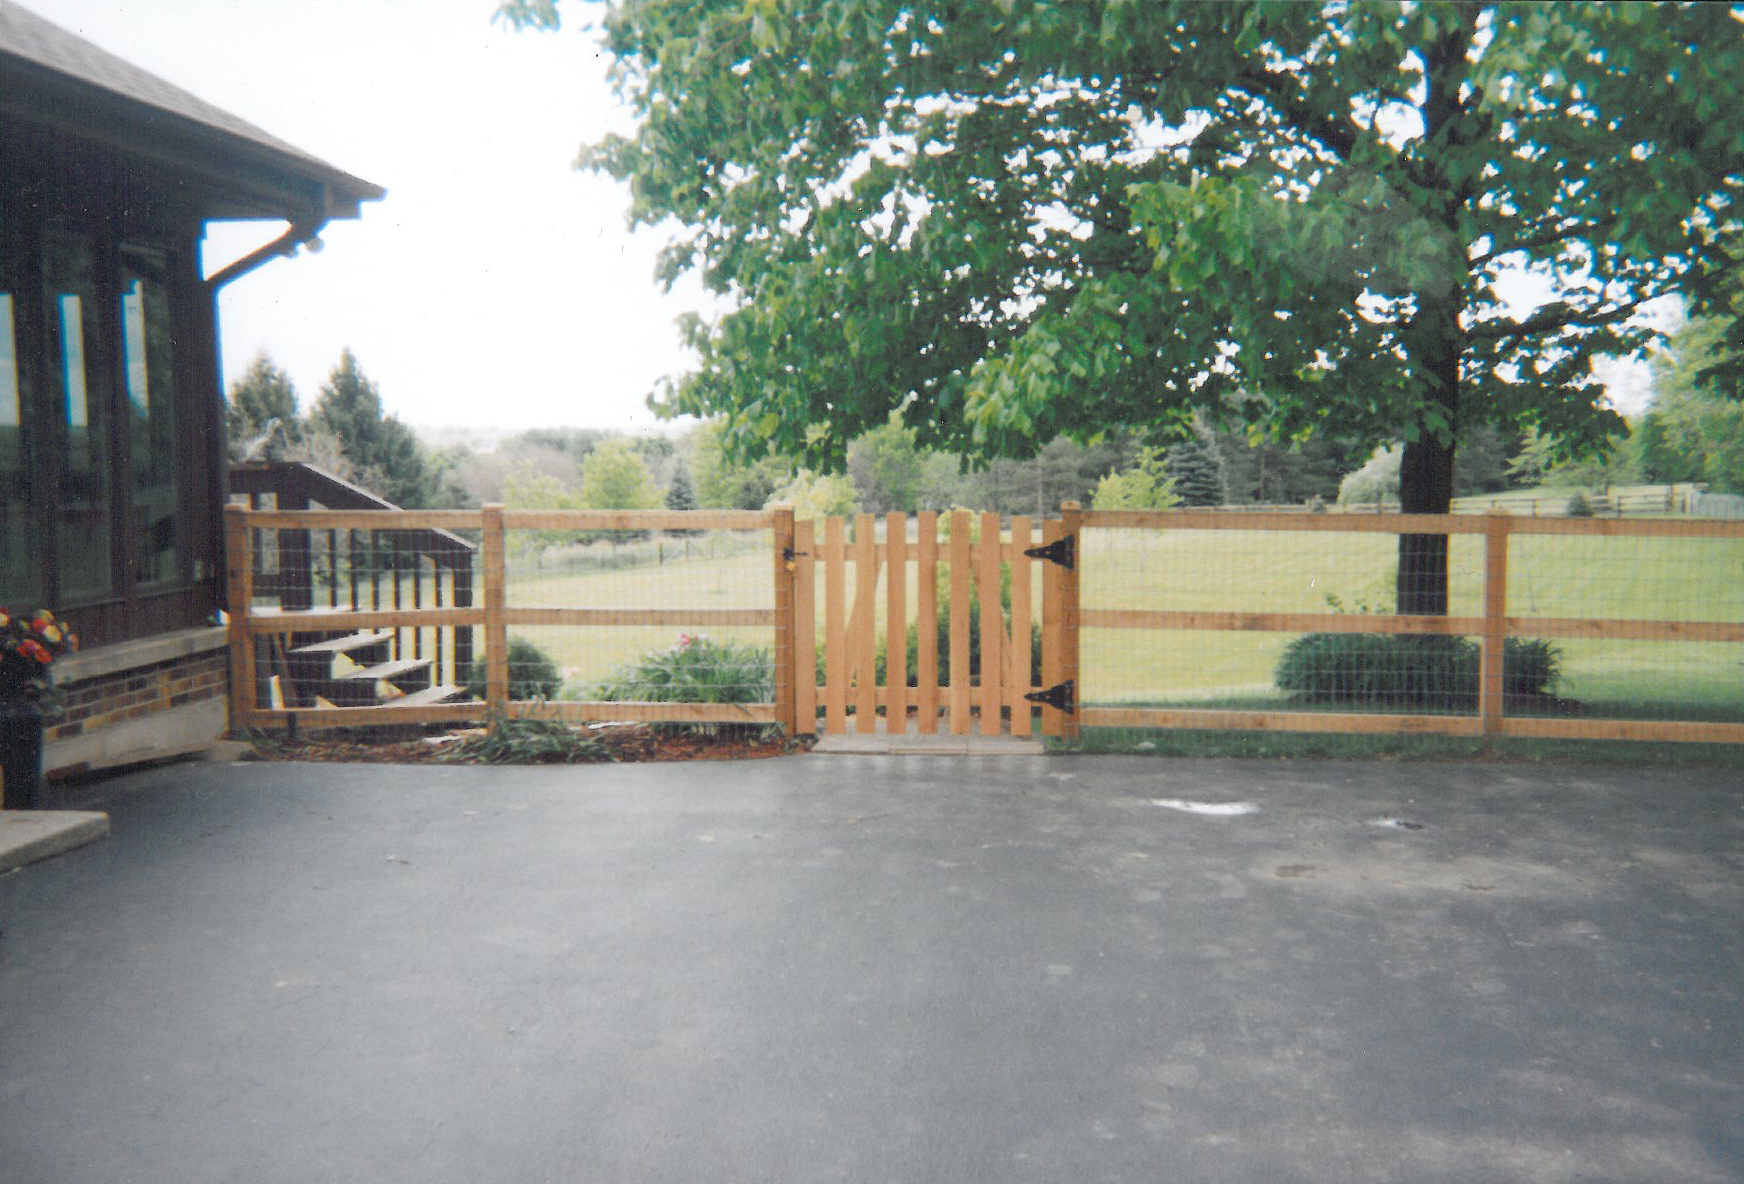 Split Rail / Slip Board Fence Layout and Installation Guide